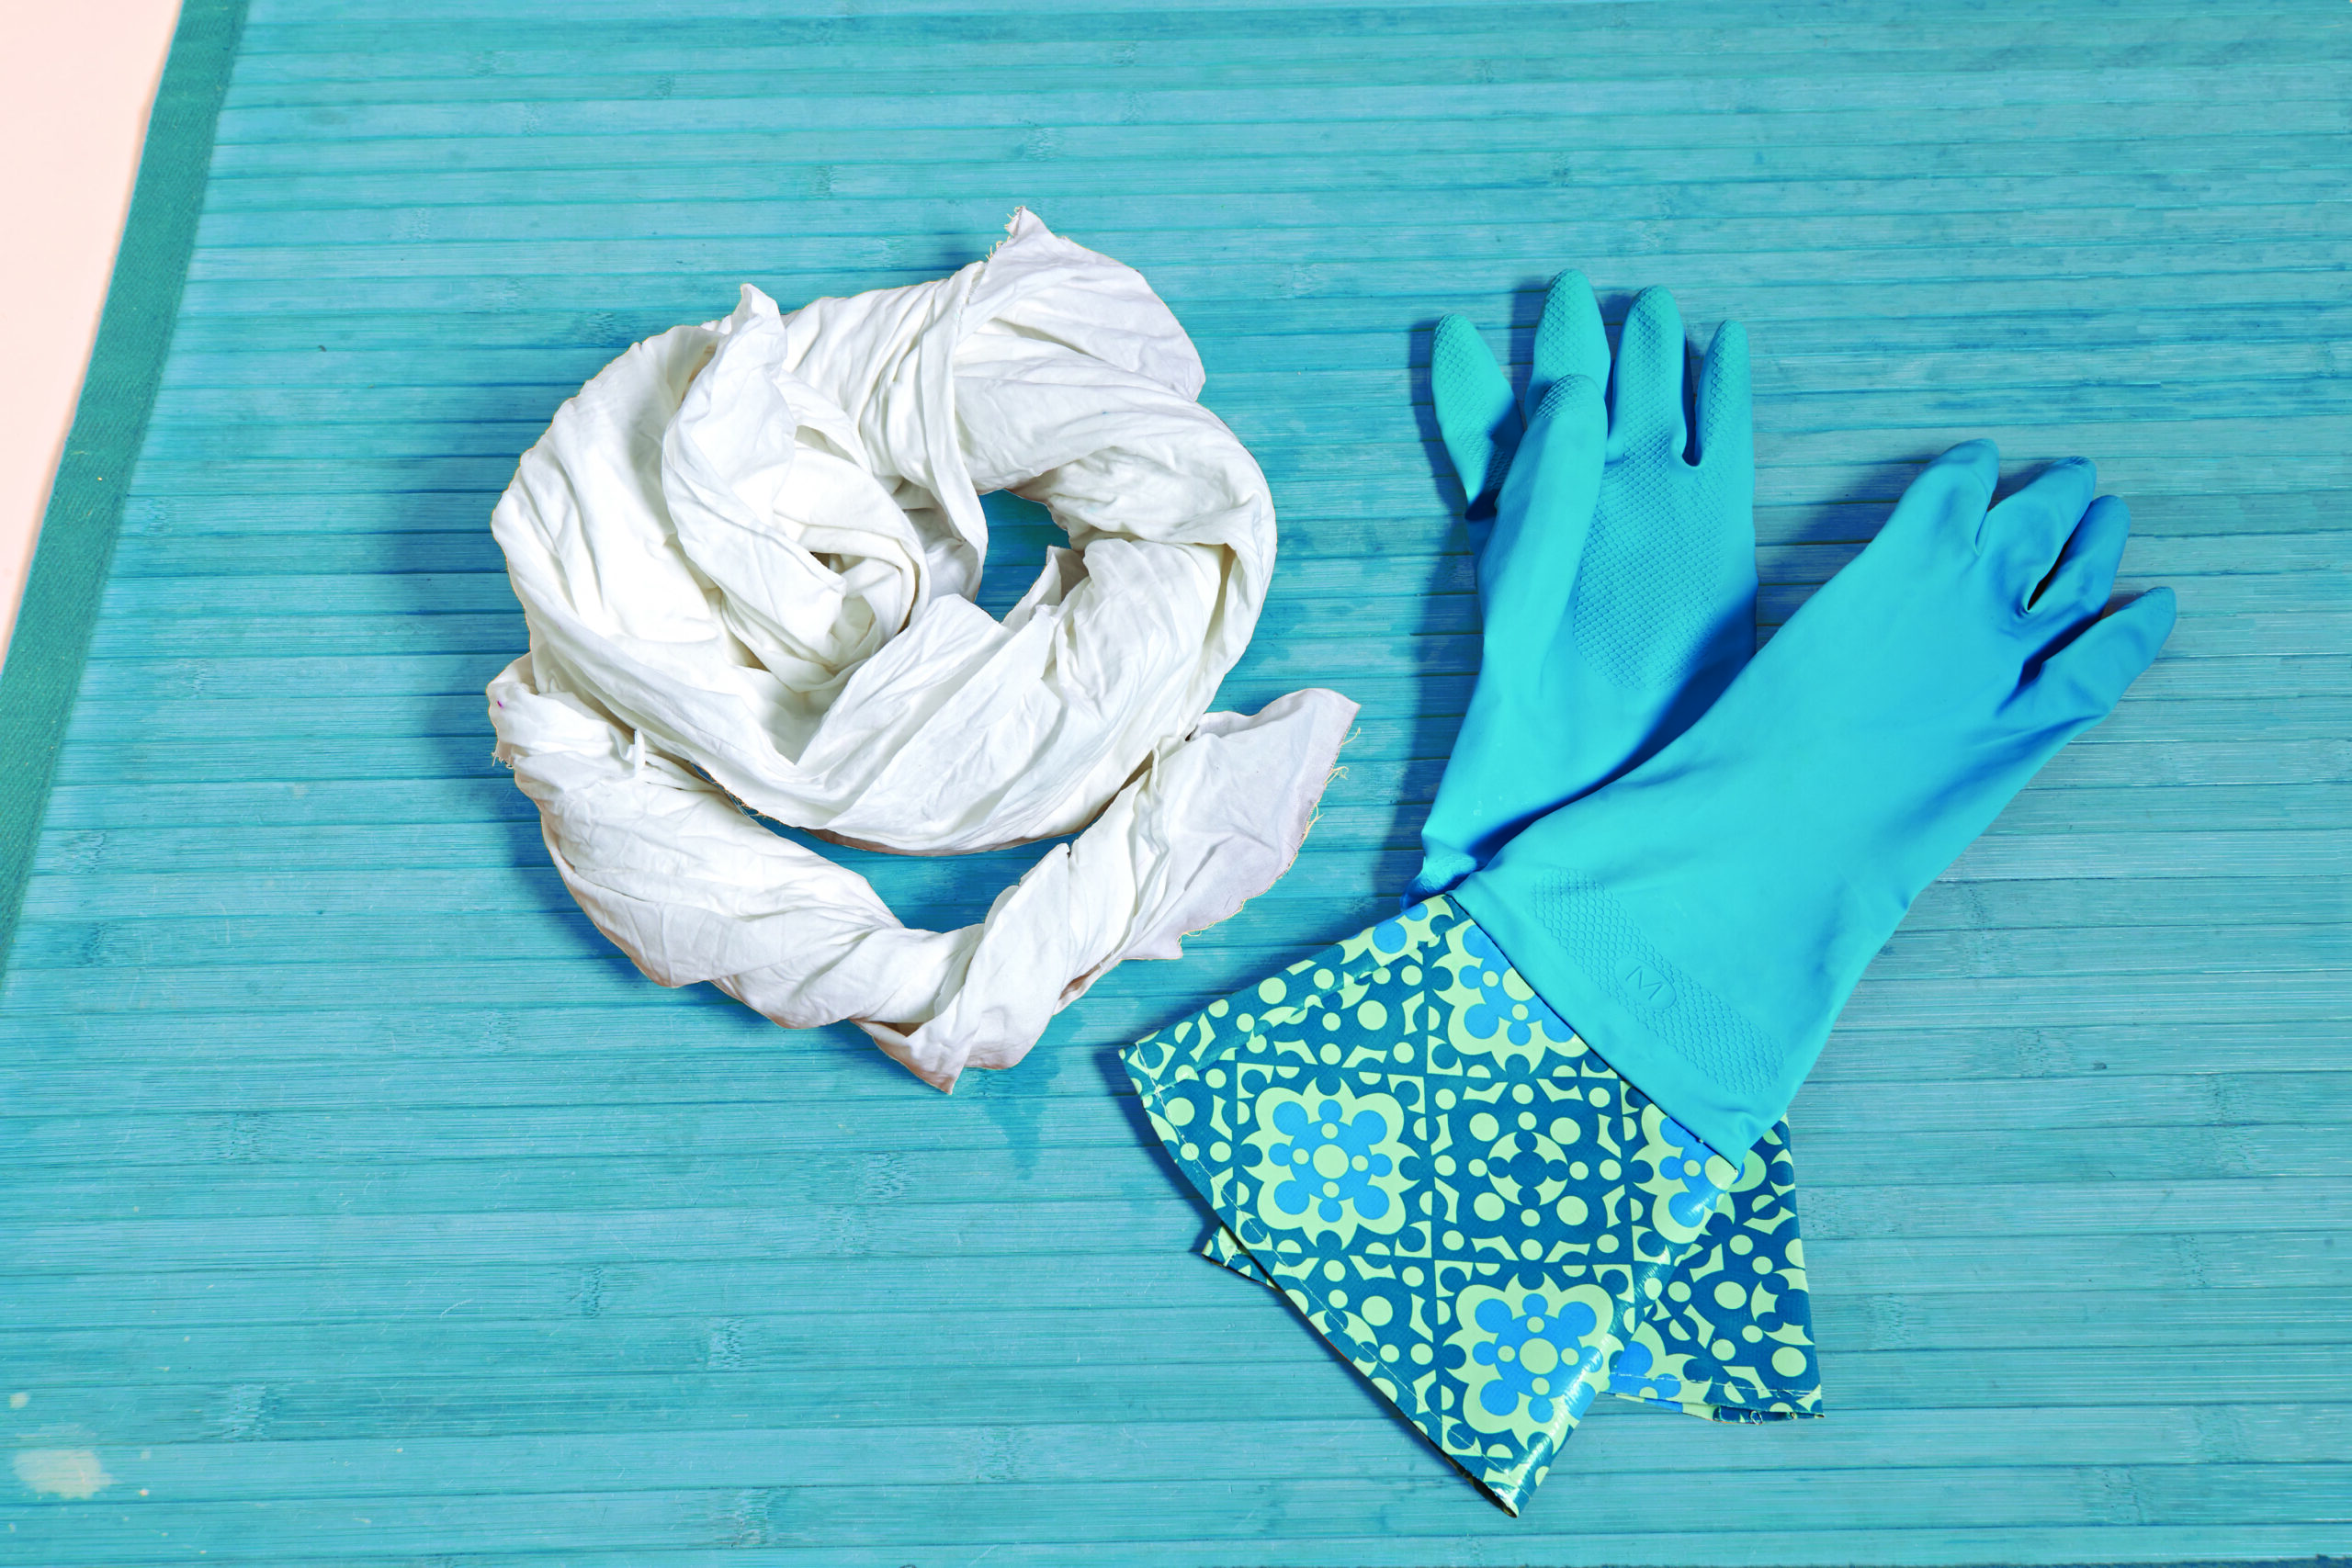 Protective gloves and fabric